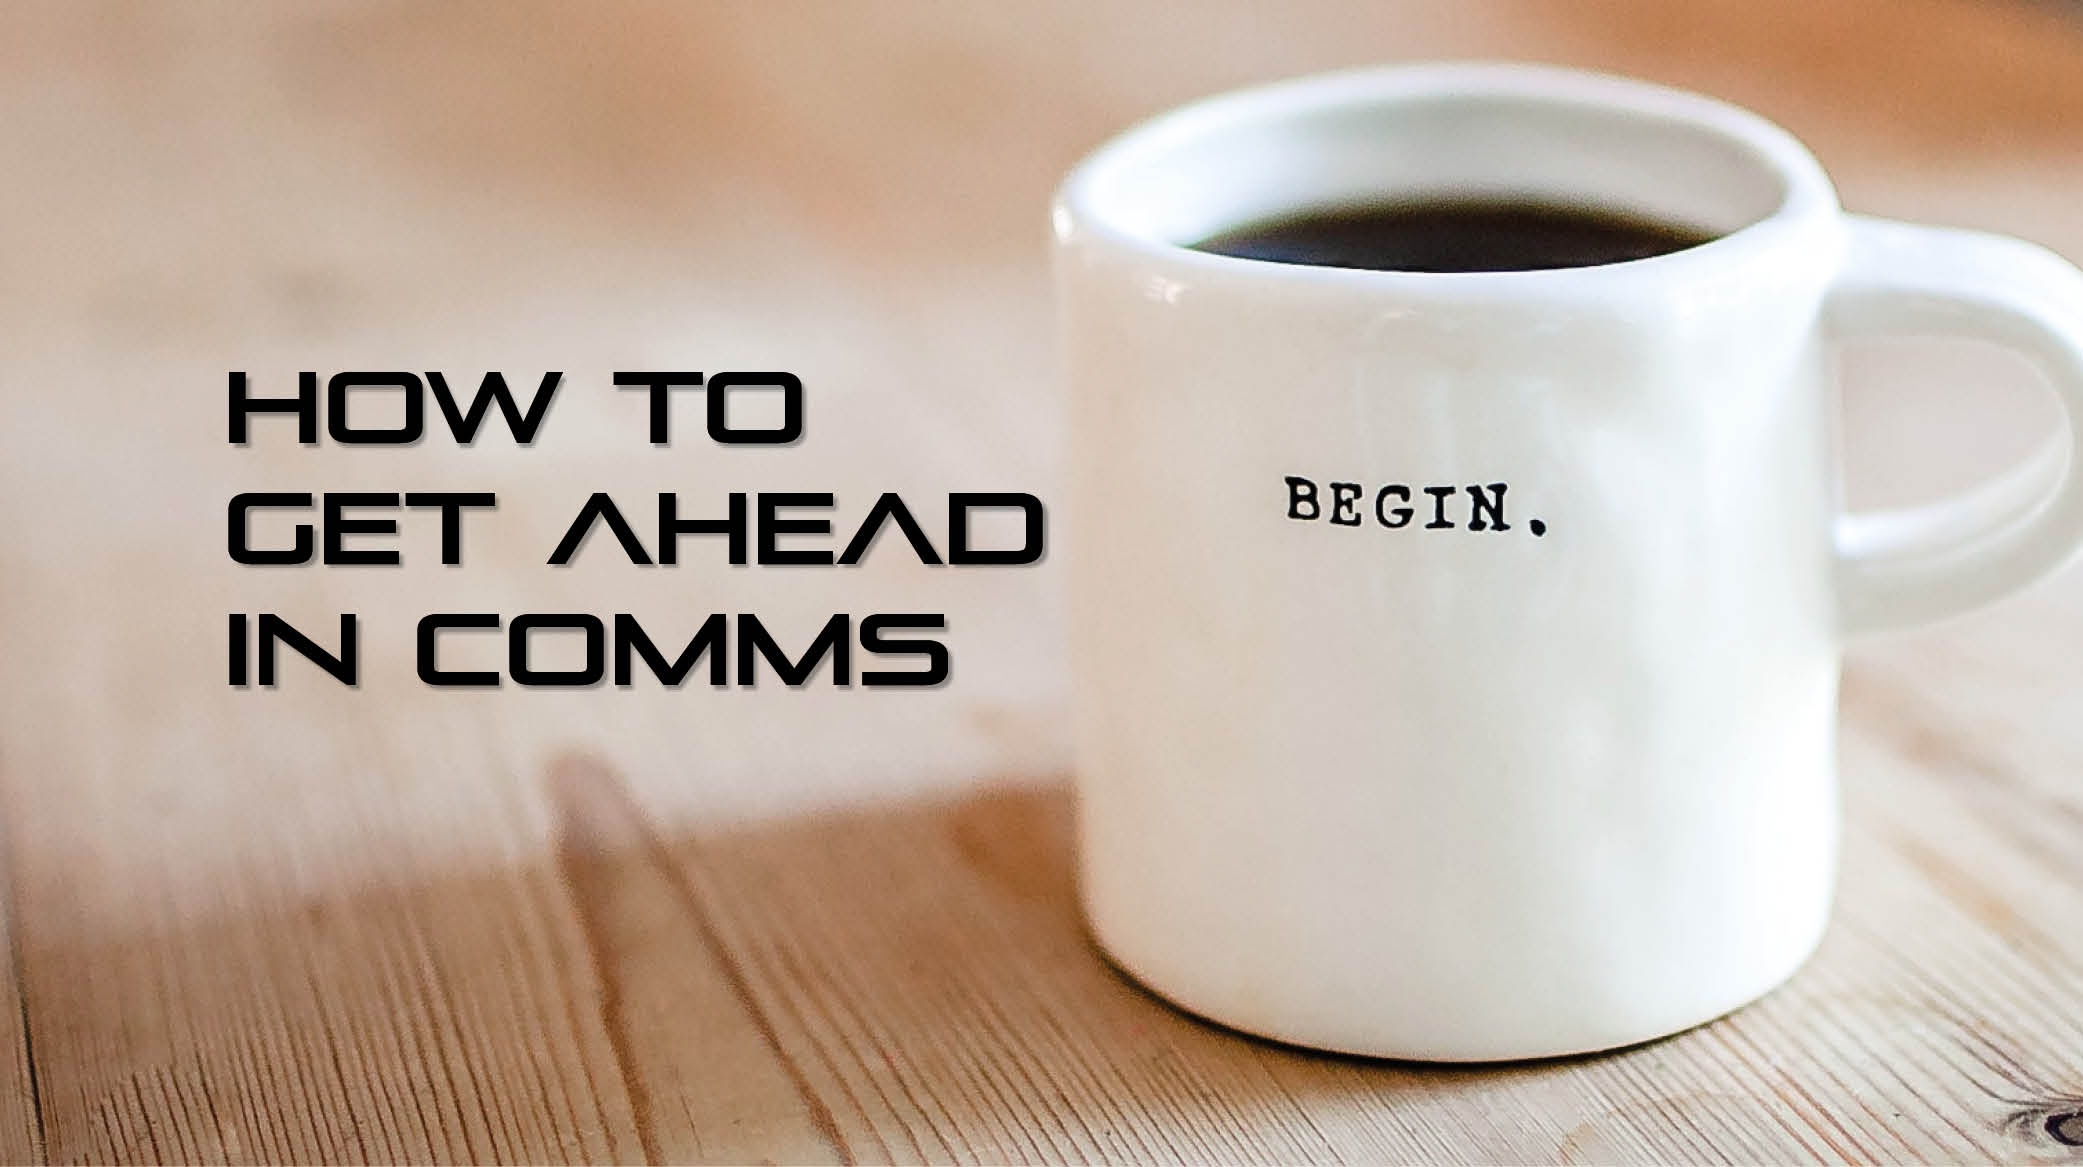 How to get ahead in comms